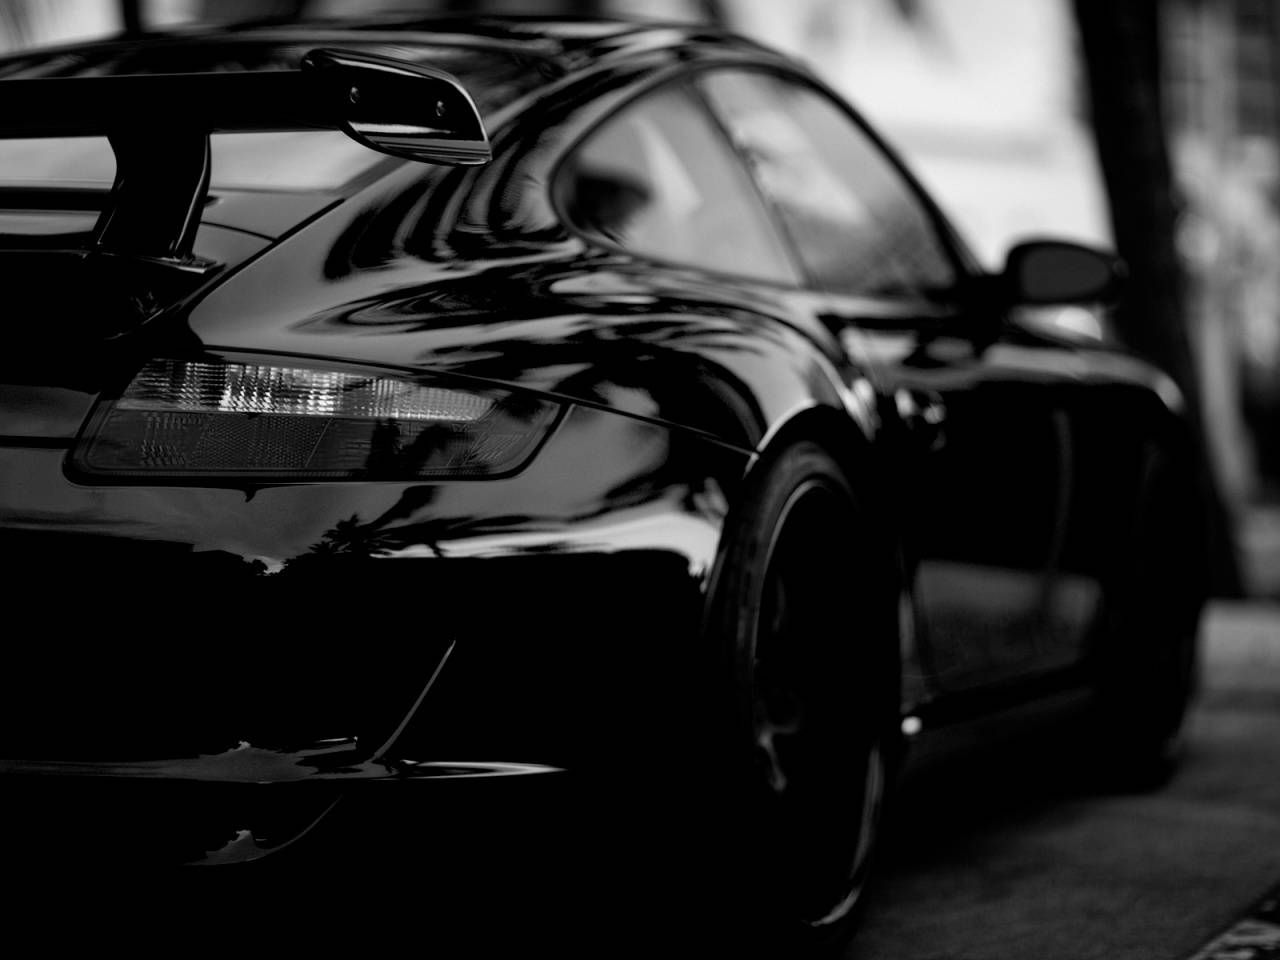 2013 Porsche Black Tuned Wallpaper Porsche Iphone Wallpaper Car Wallpapers Porsche Cars